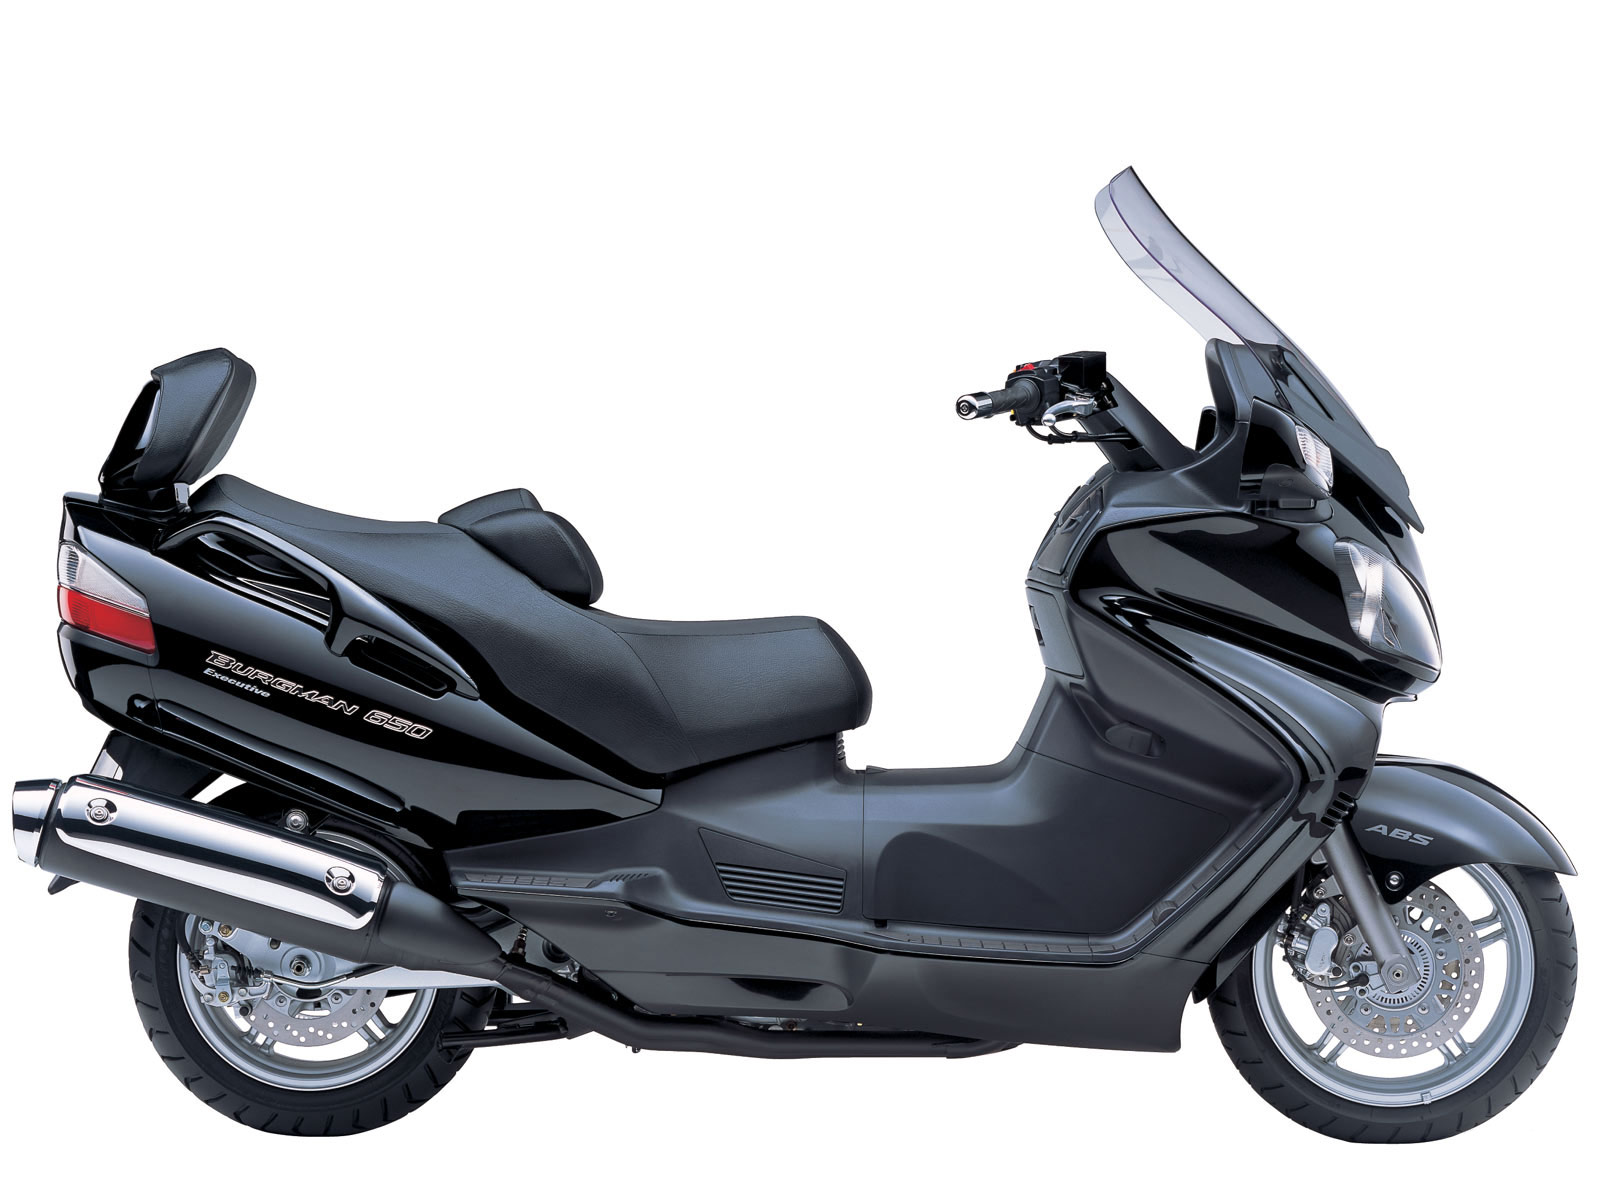 2012 suzuki burgman 650 executive scooter motorboxer. Black Bedroom Furniture Sets. Home Design Ideas